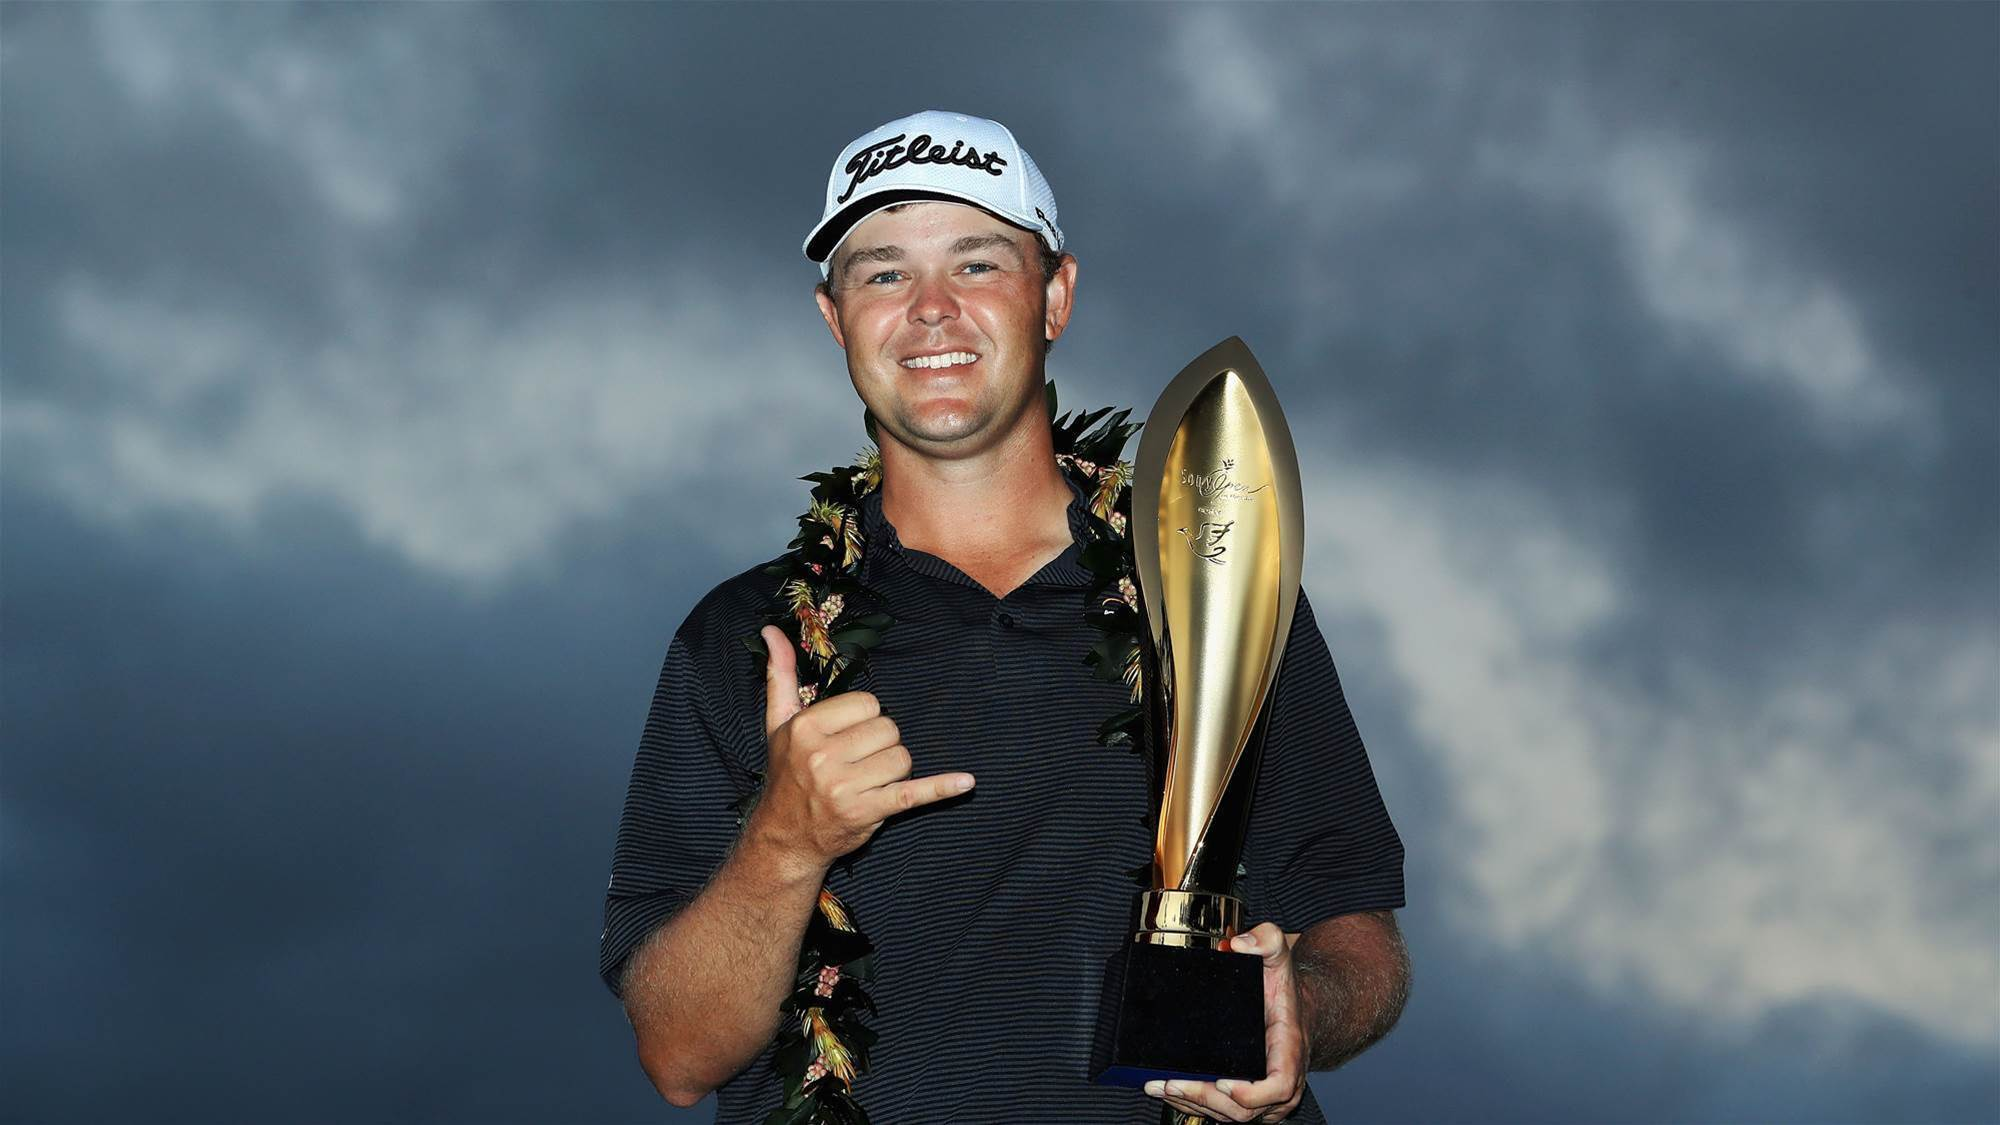 Kizzire wins Sony Open after long playoff